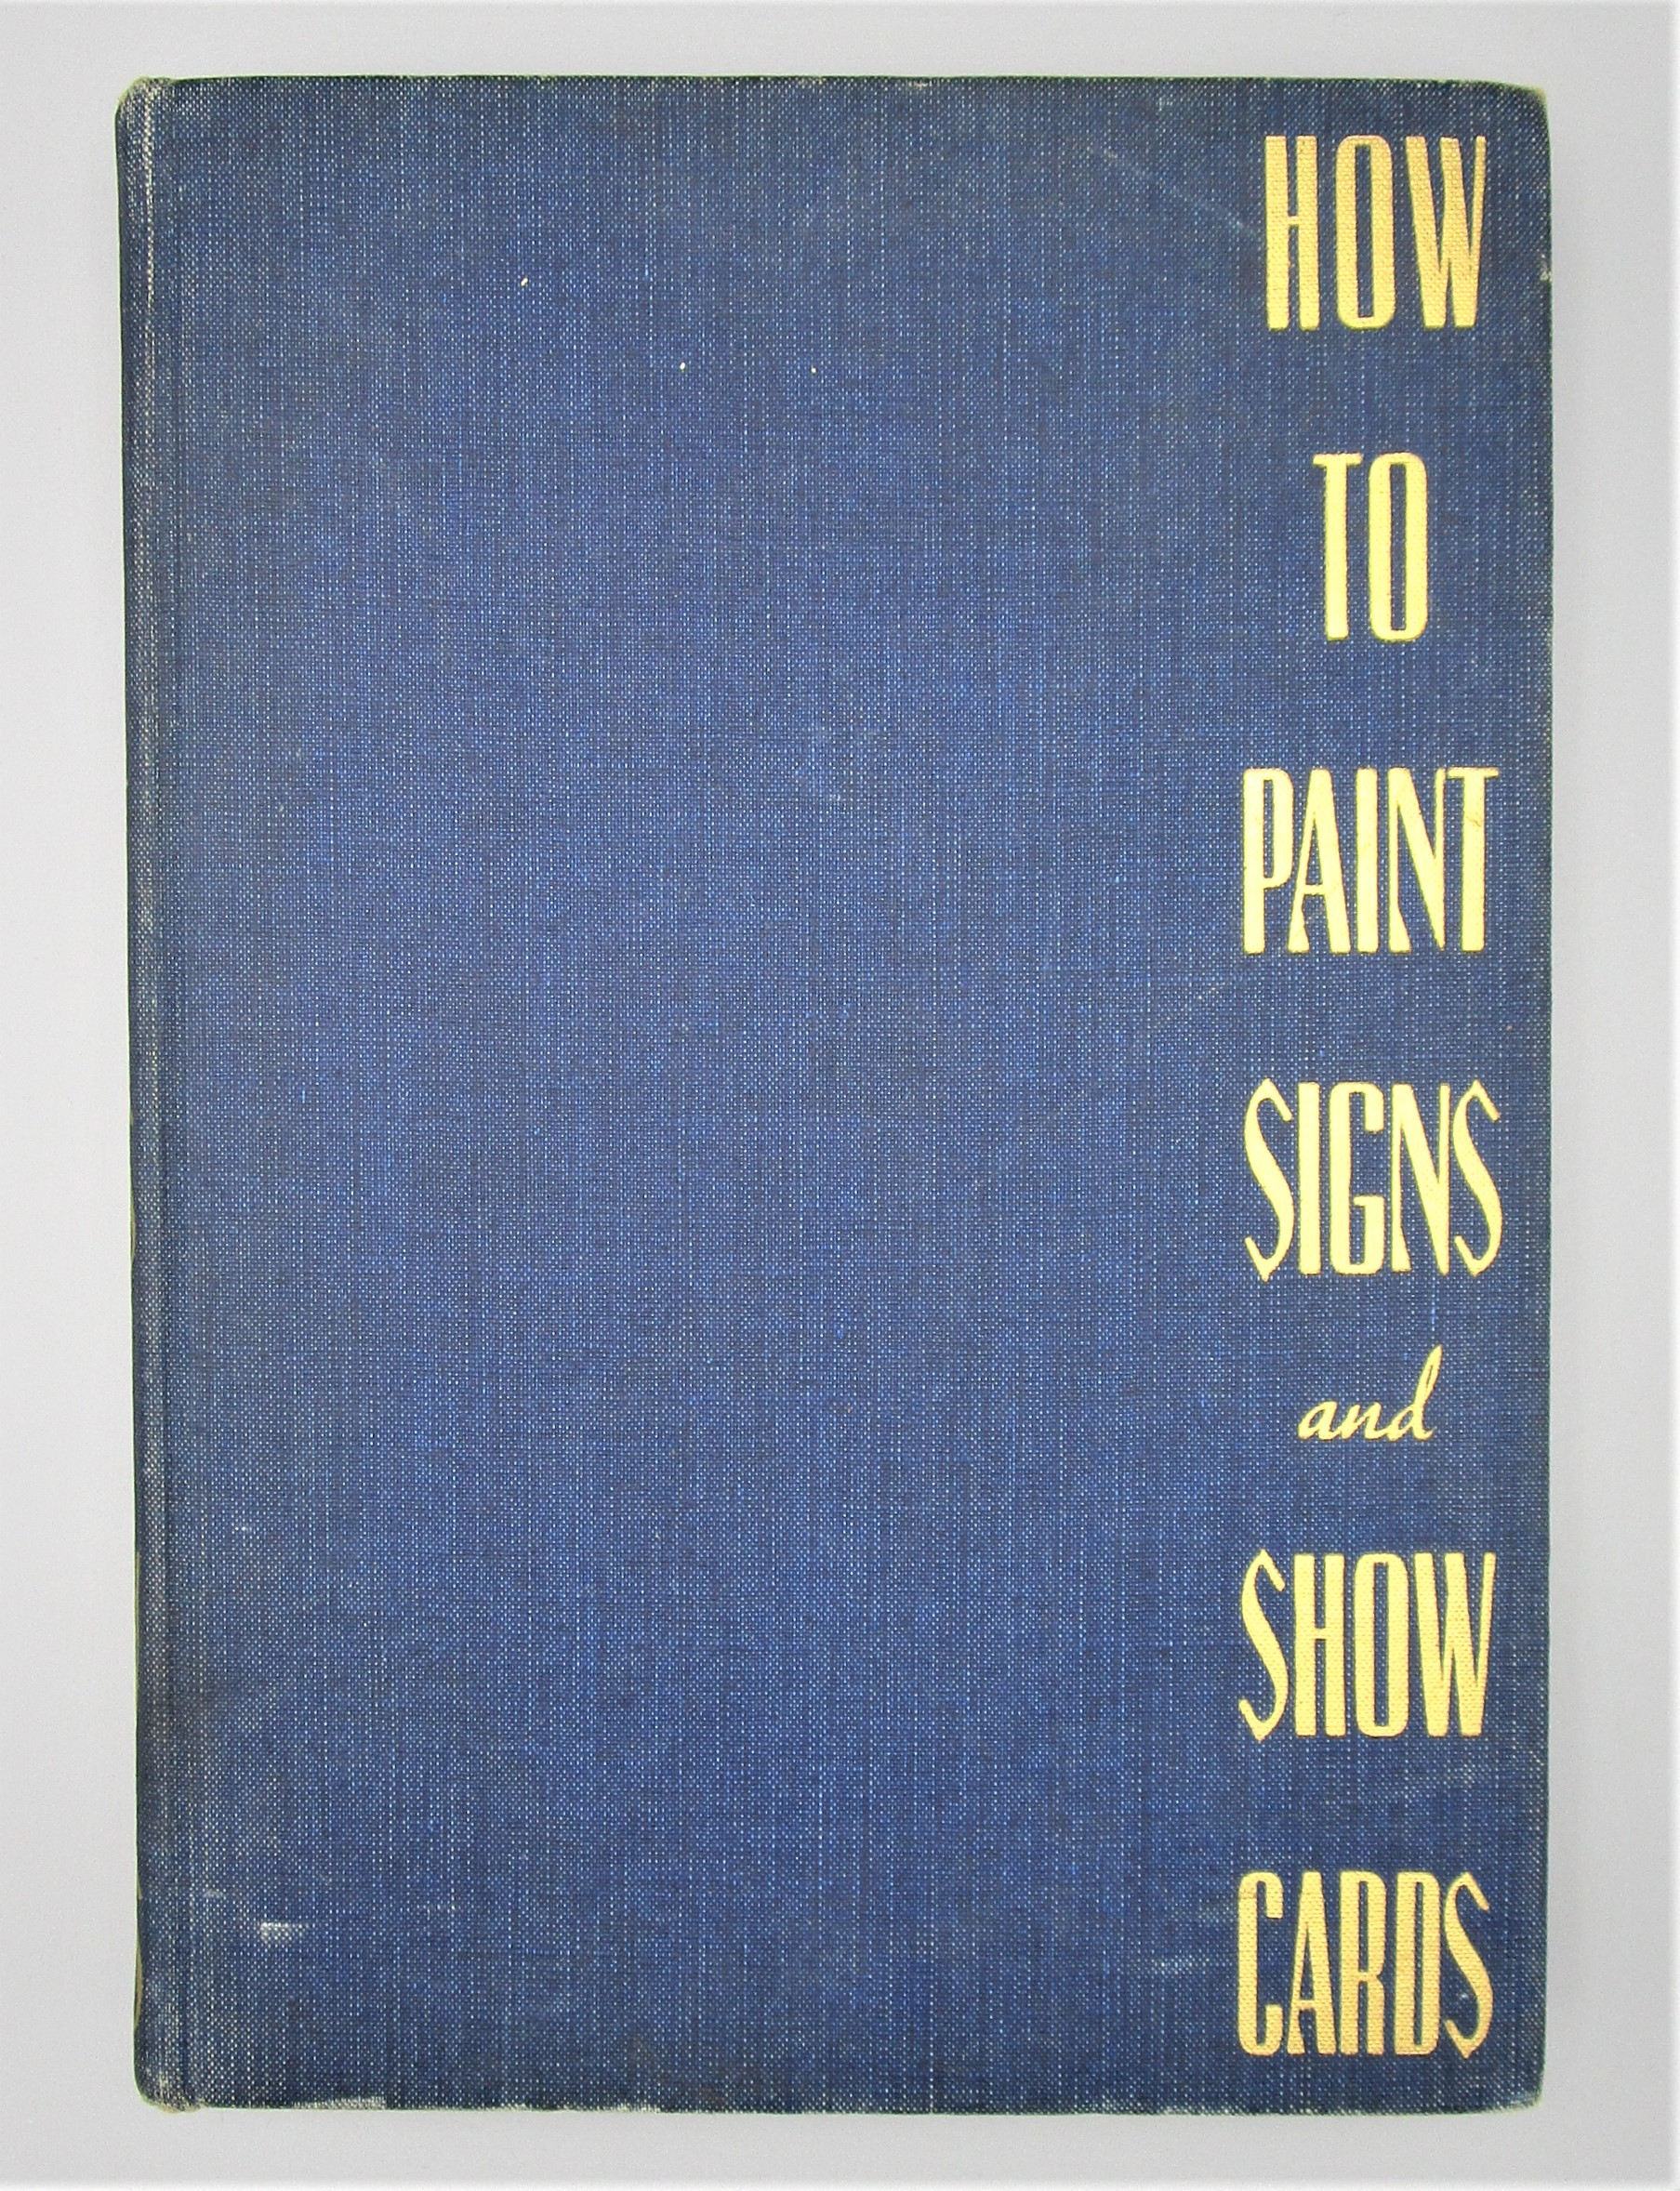 HOW TO PAINT SIGNS AND SHOW CARDS, by E. C. Matthews - 1940